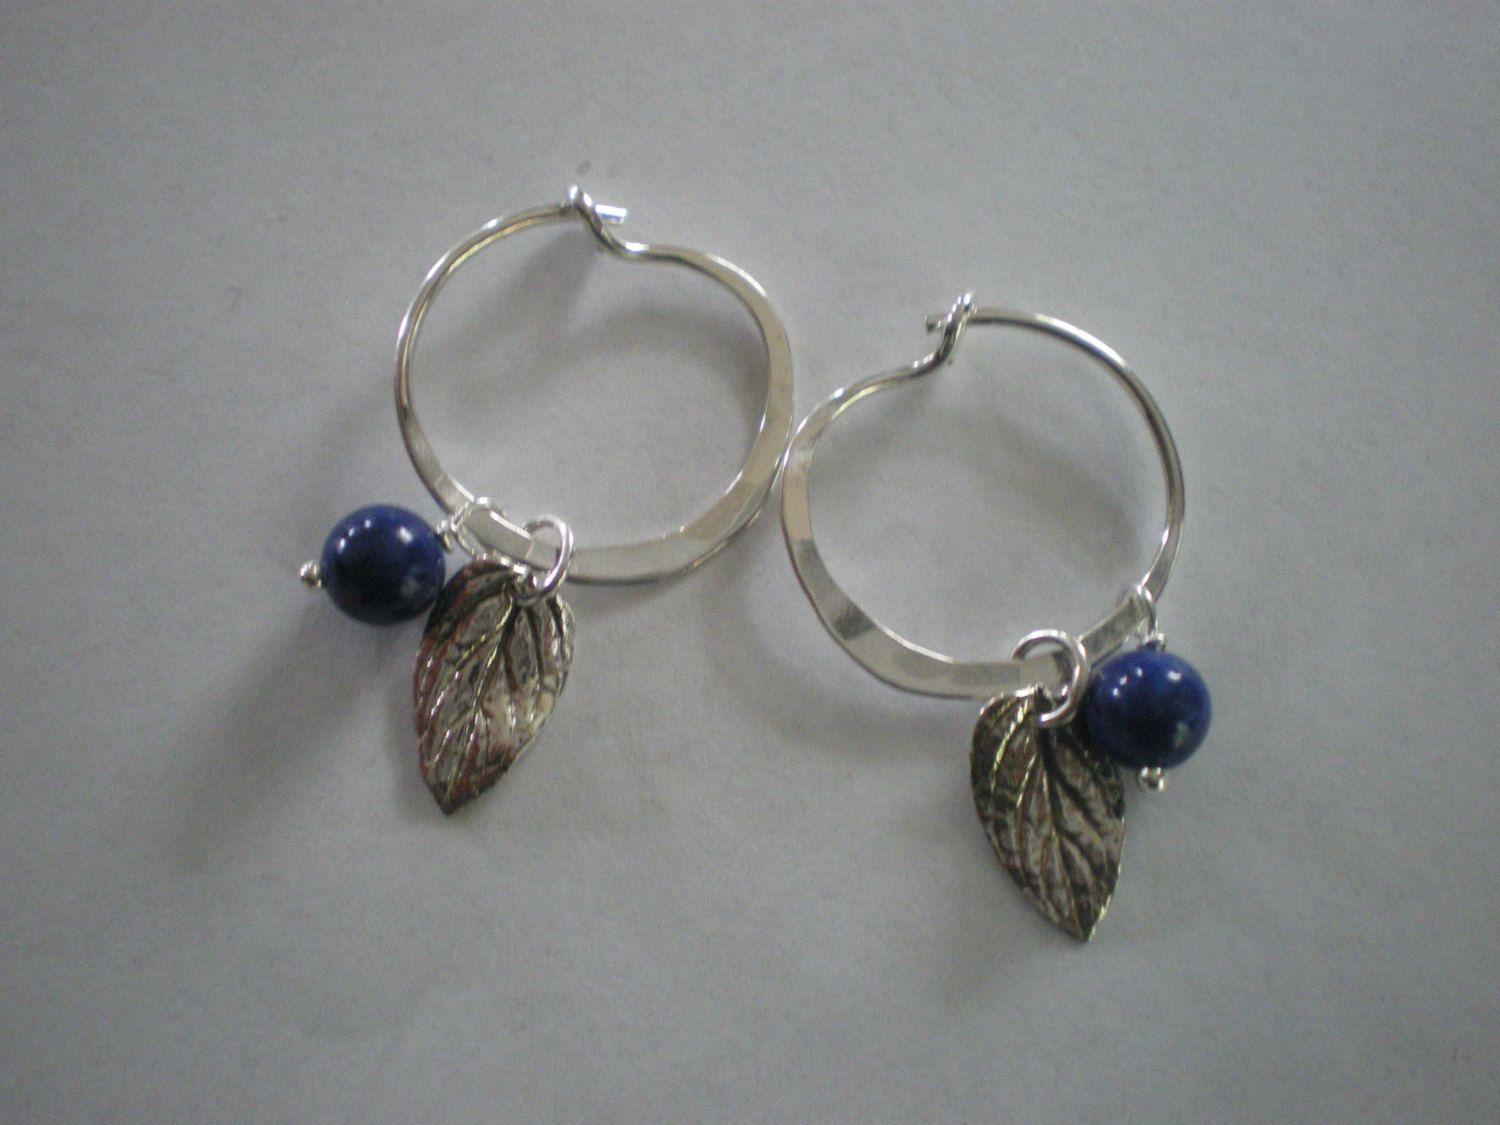 Maine Blueberries Sterling Silver and Lapis Lazuli Hoop Earrings by glistajewelry on Etsy